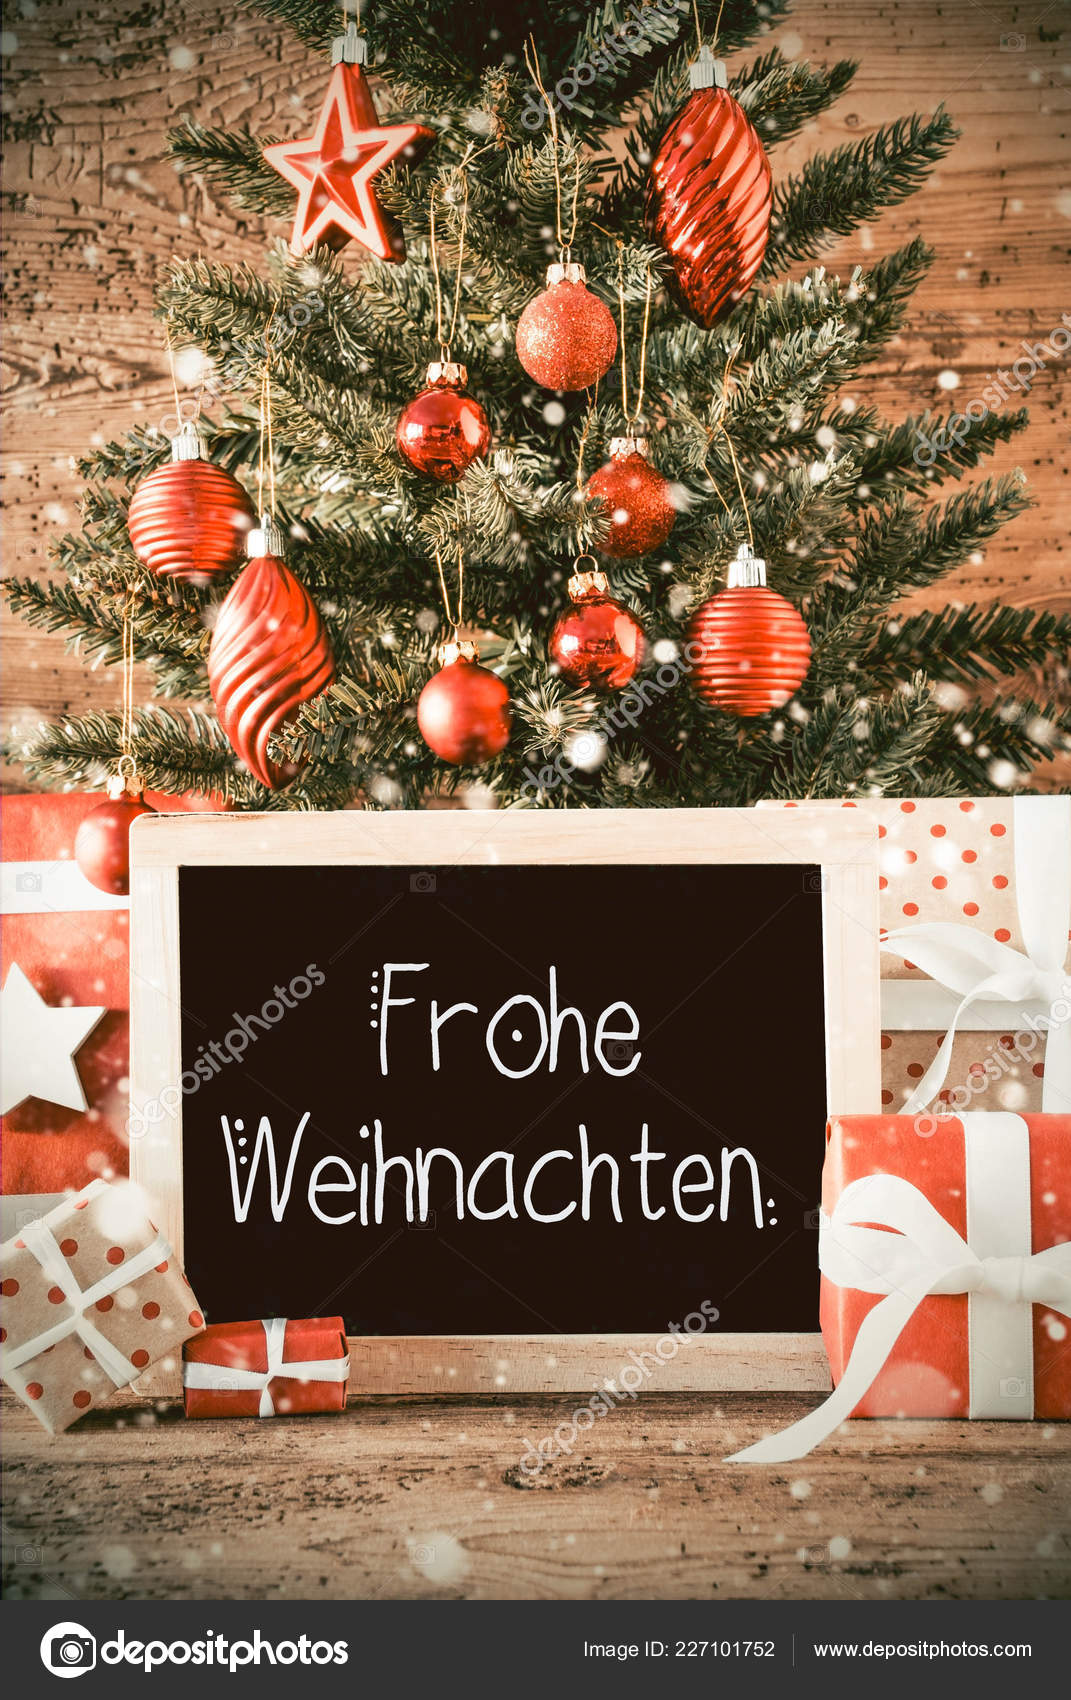 Frohe Weihnachten Download.Vertical Tree Gifts Calligraphy Frohe Weihnachten Means Merry